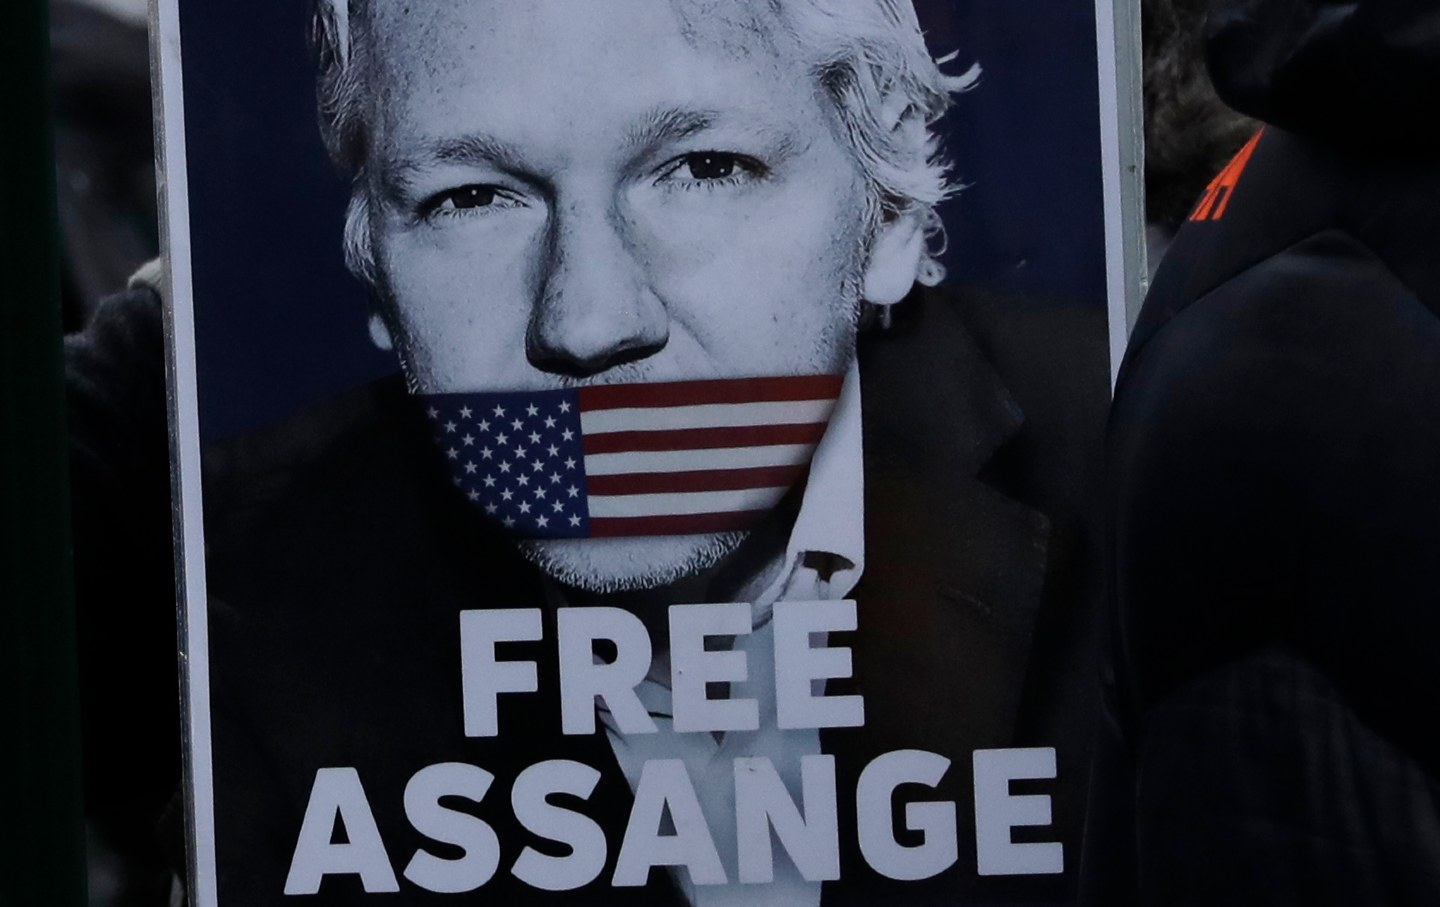 Poster of Julian Assange that says